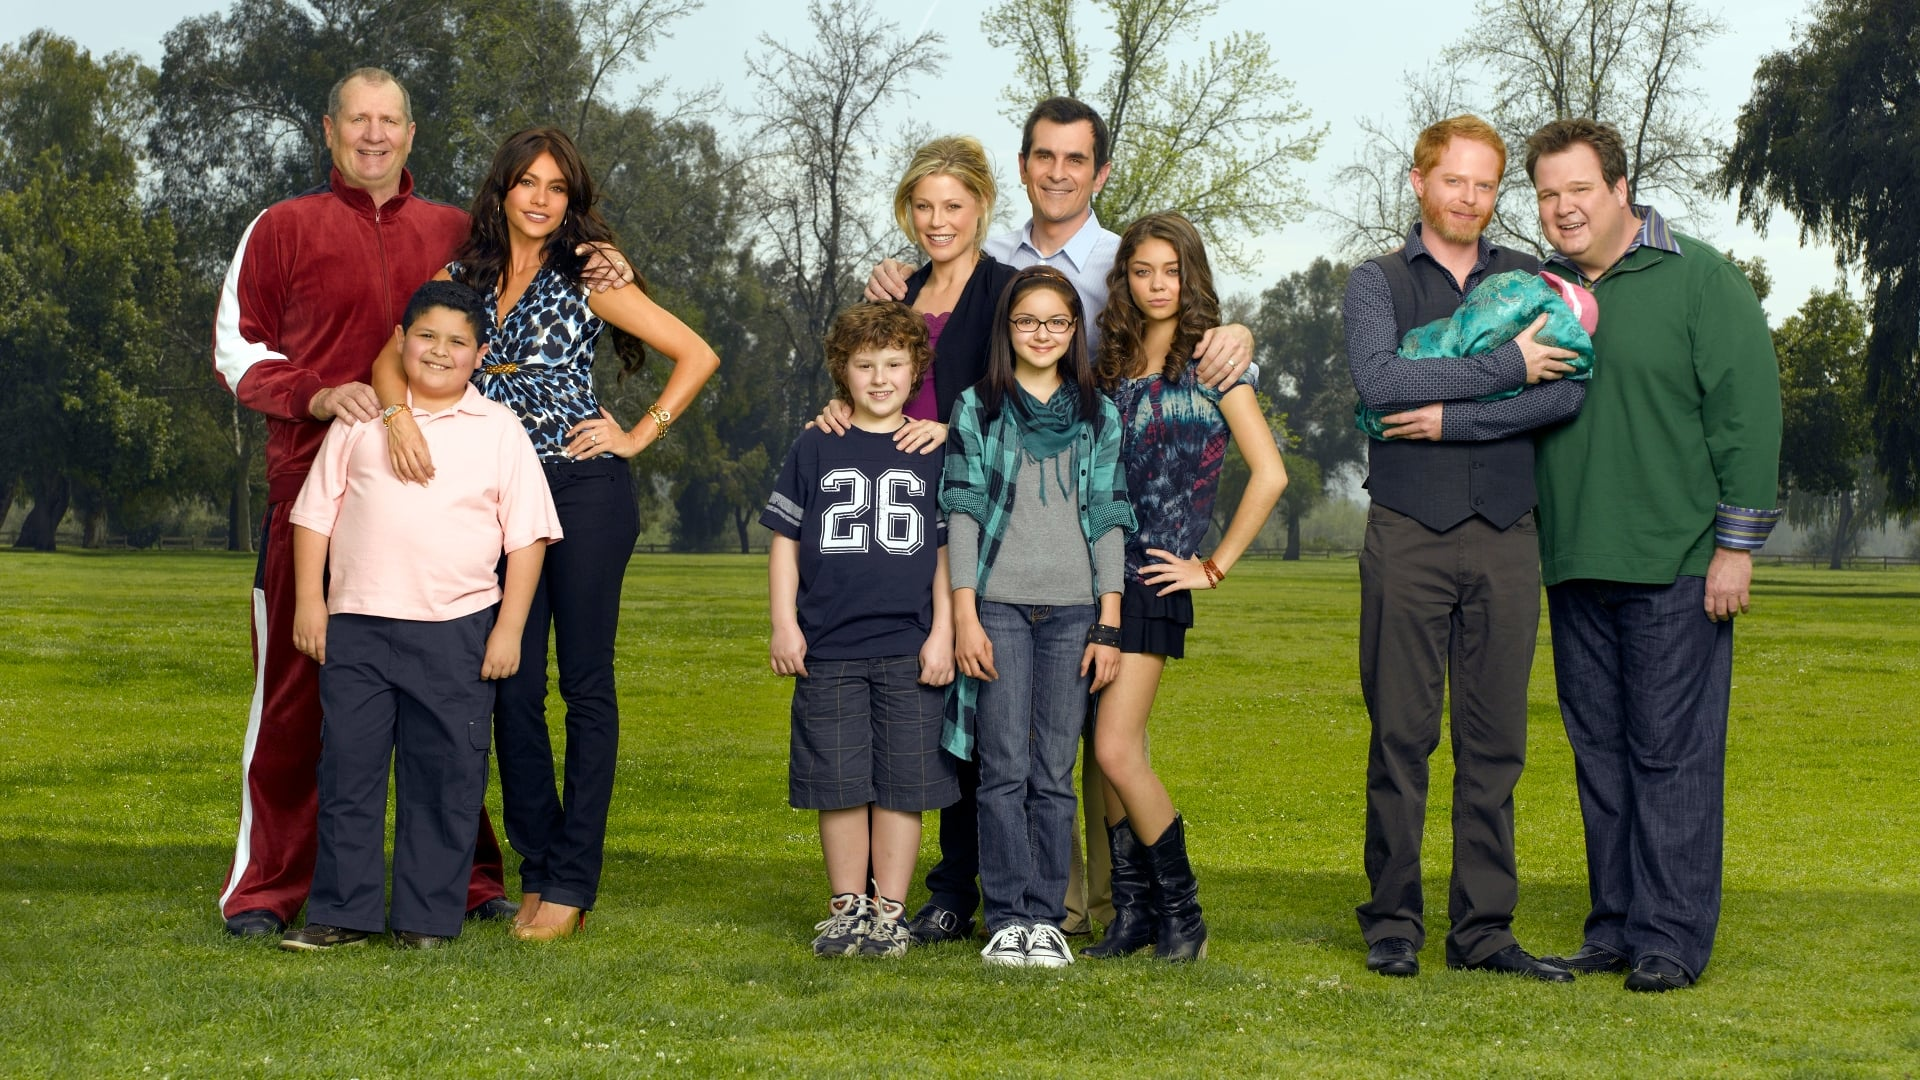 Modern Family - Season 11 Episode 13